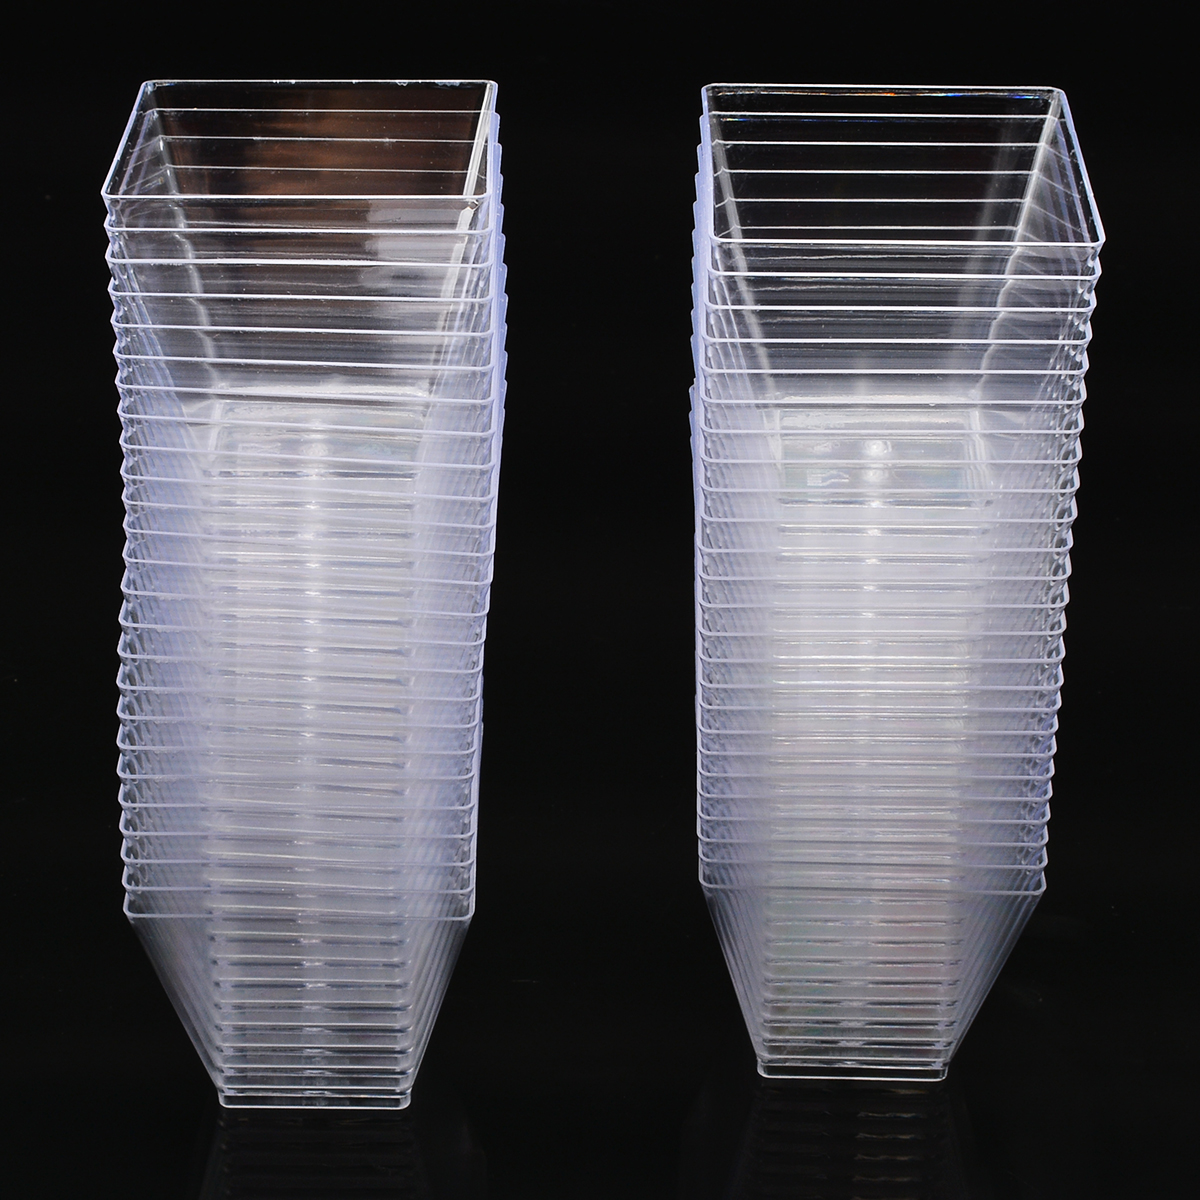 50pcs 2oz/60ml Disposable Square Cup Plastic Food Cup For Cake Dessert Cups Cube Pudding Mousses Yougurt Jelly Container